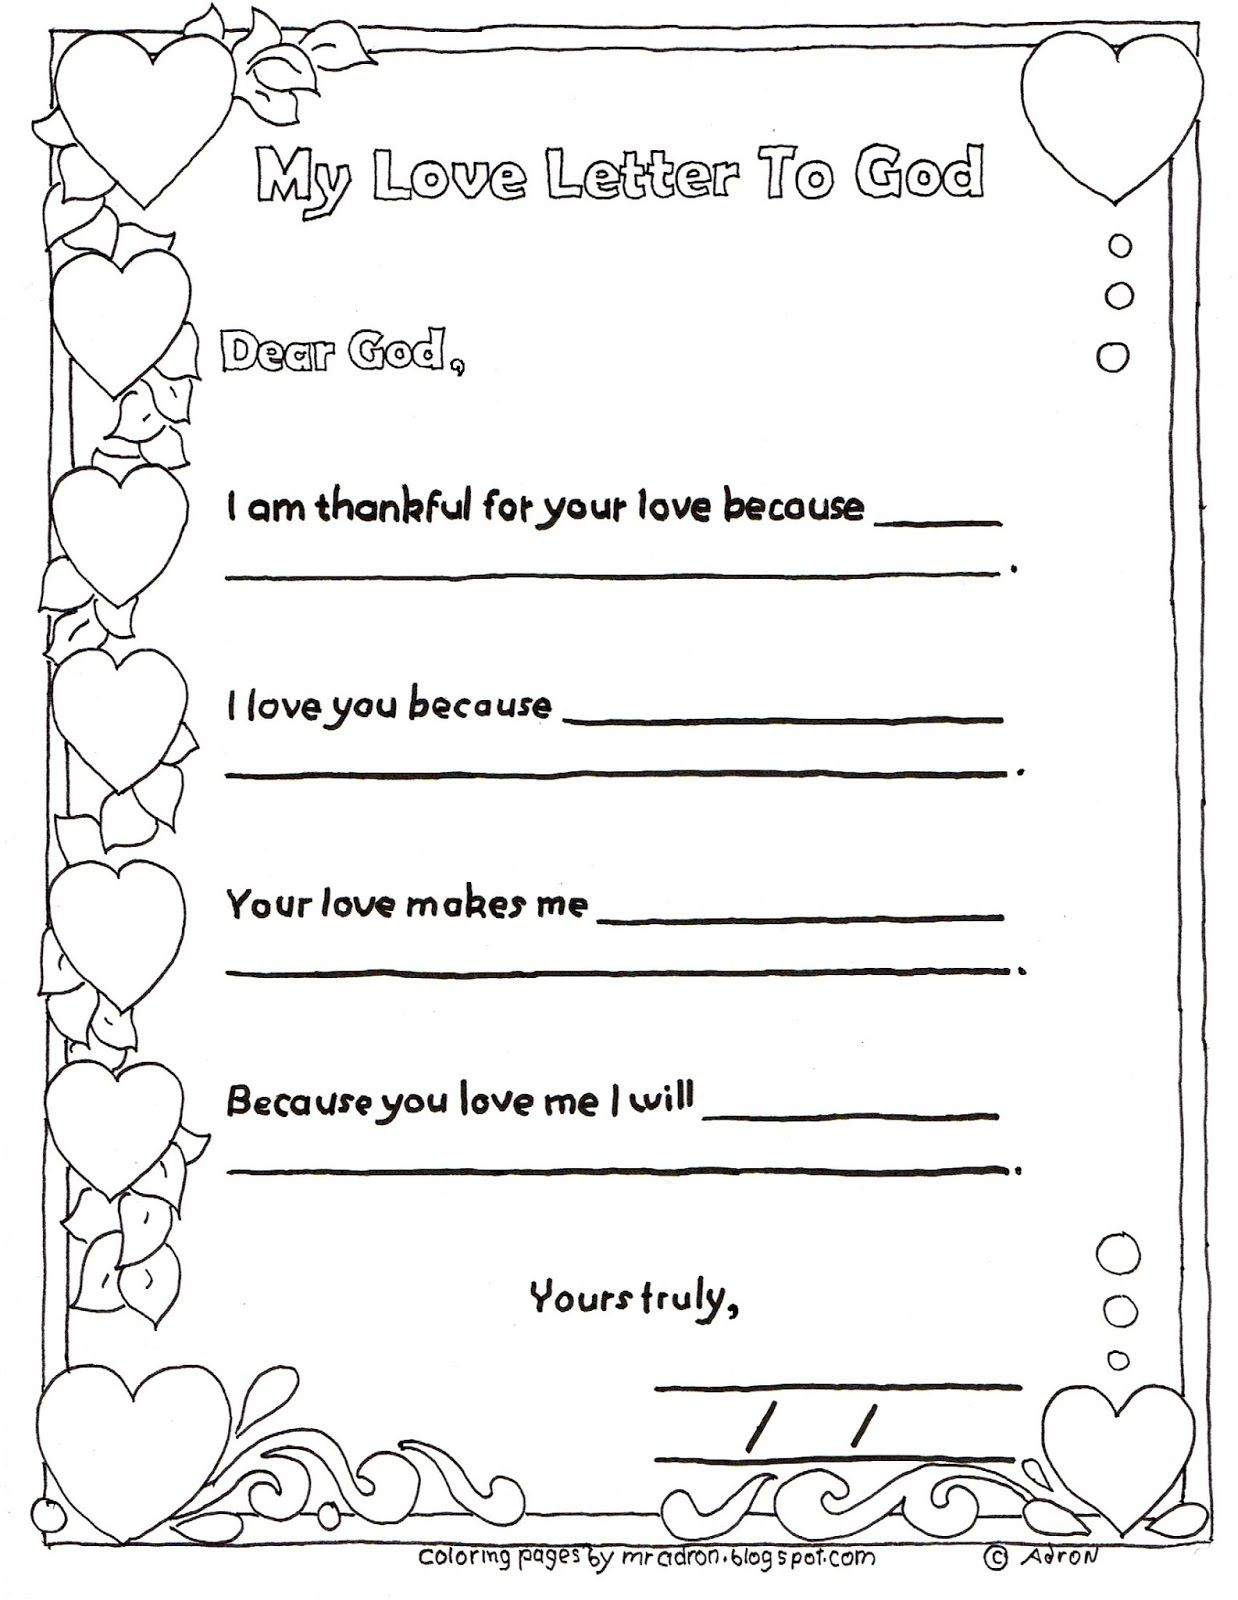 This Printable Coloring Page Is Perfect For A Church Lesson On Loving God I Created It For A St